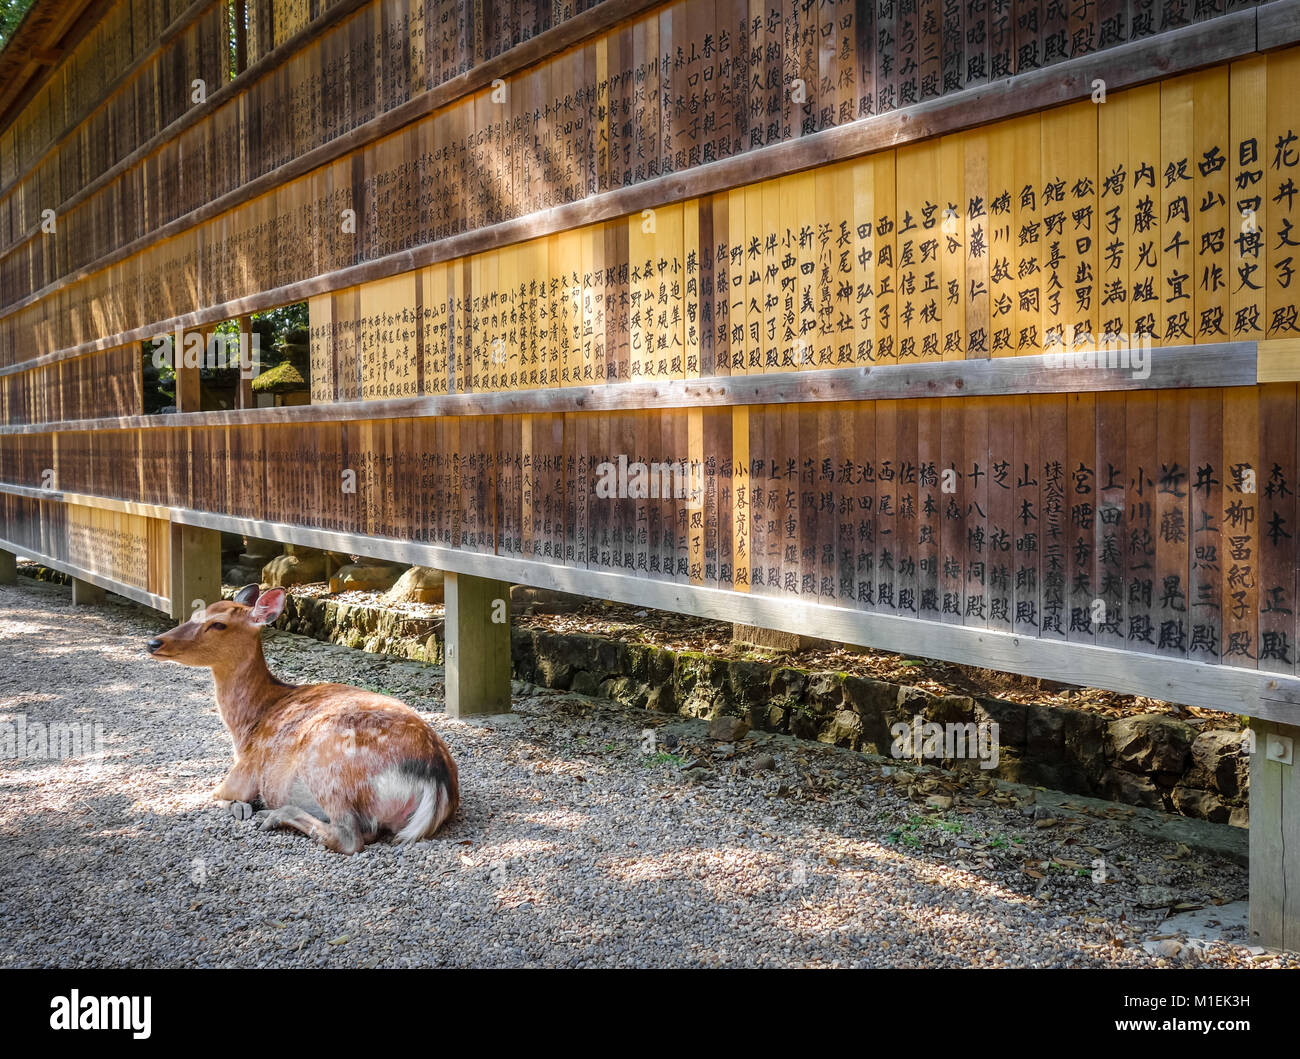 Sika deer in front of Wooden tablets, Nara, Japan - Stock Image